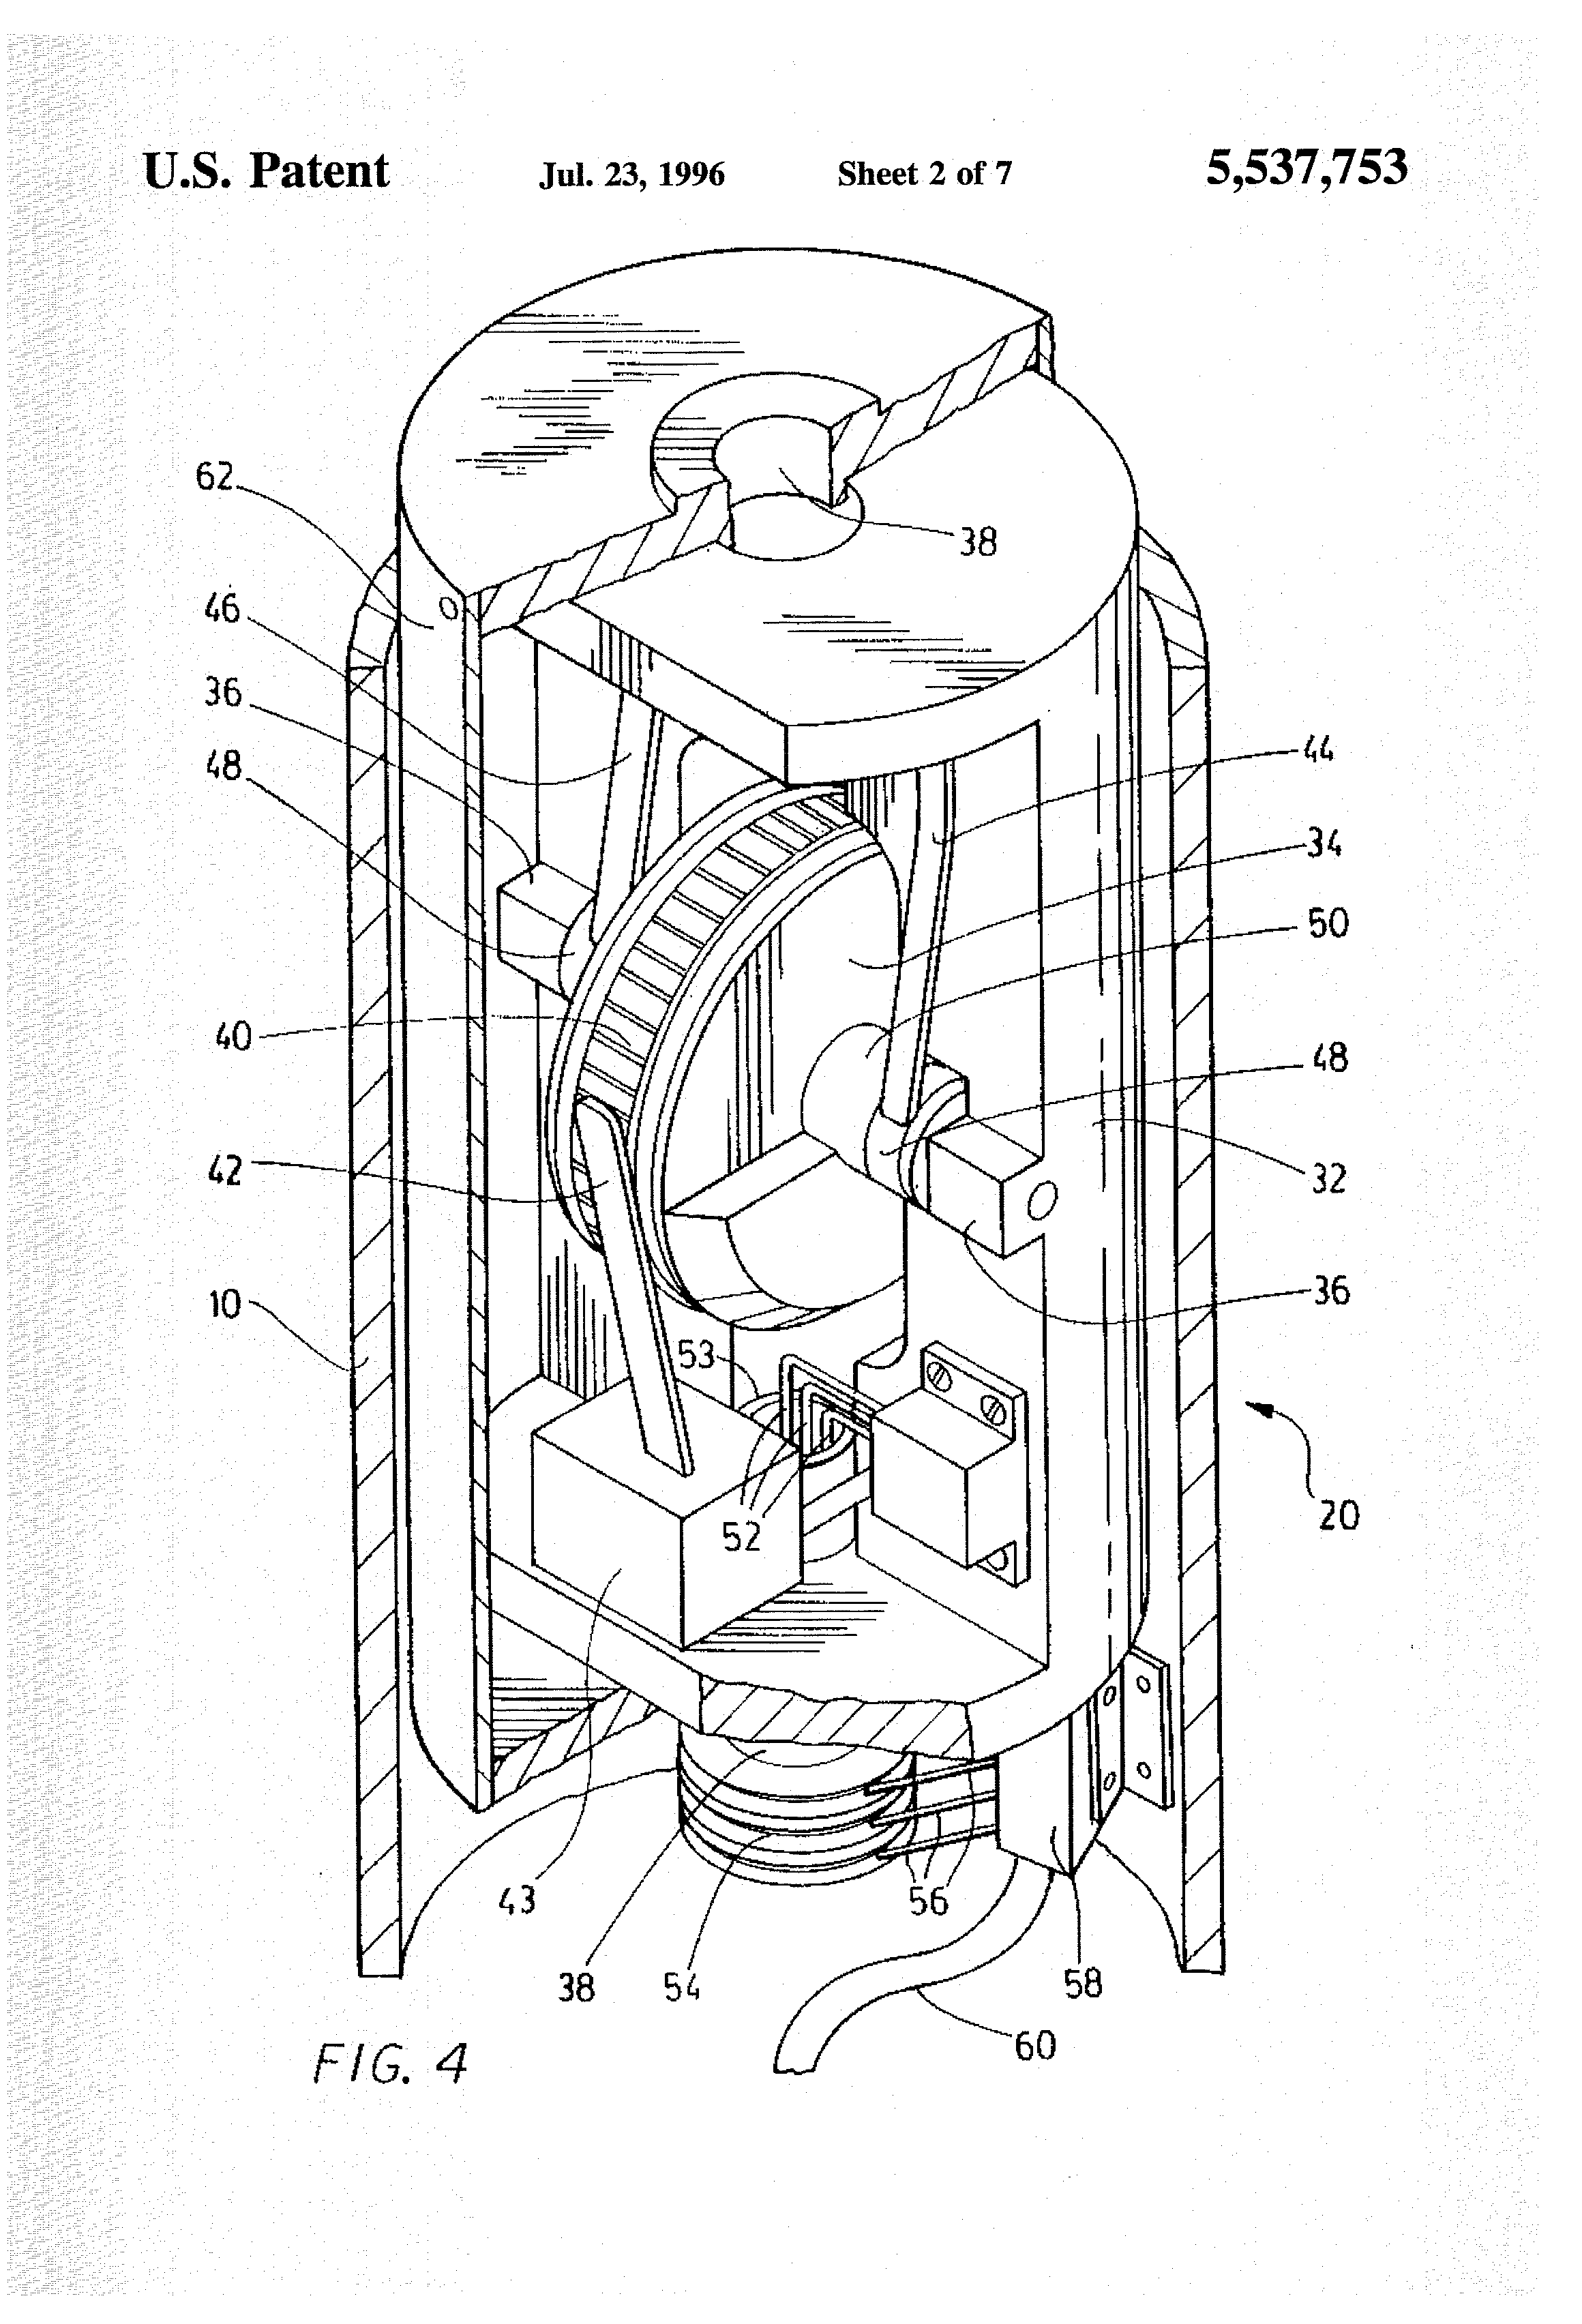 Patent Us5537753 Bore Hole Inclinometer Apparatus Google Patents Wiring Diagram Drawing